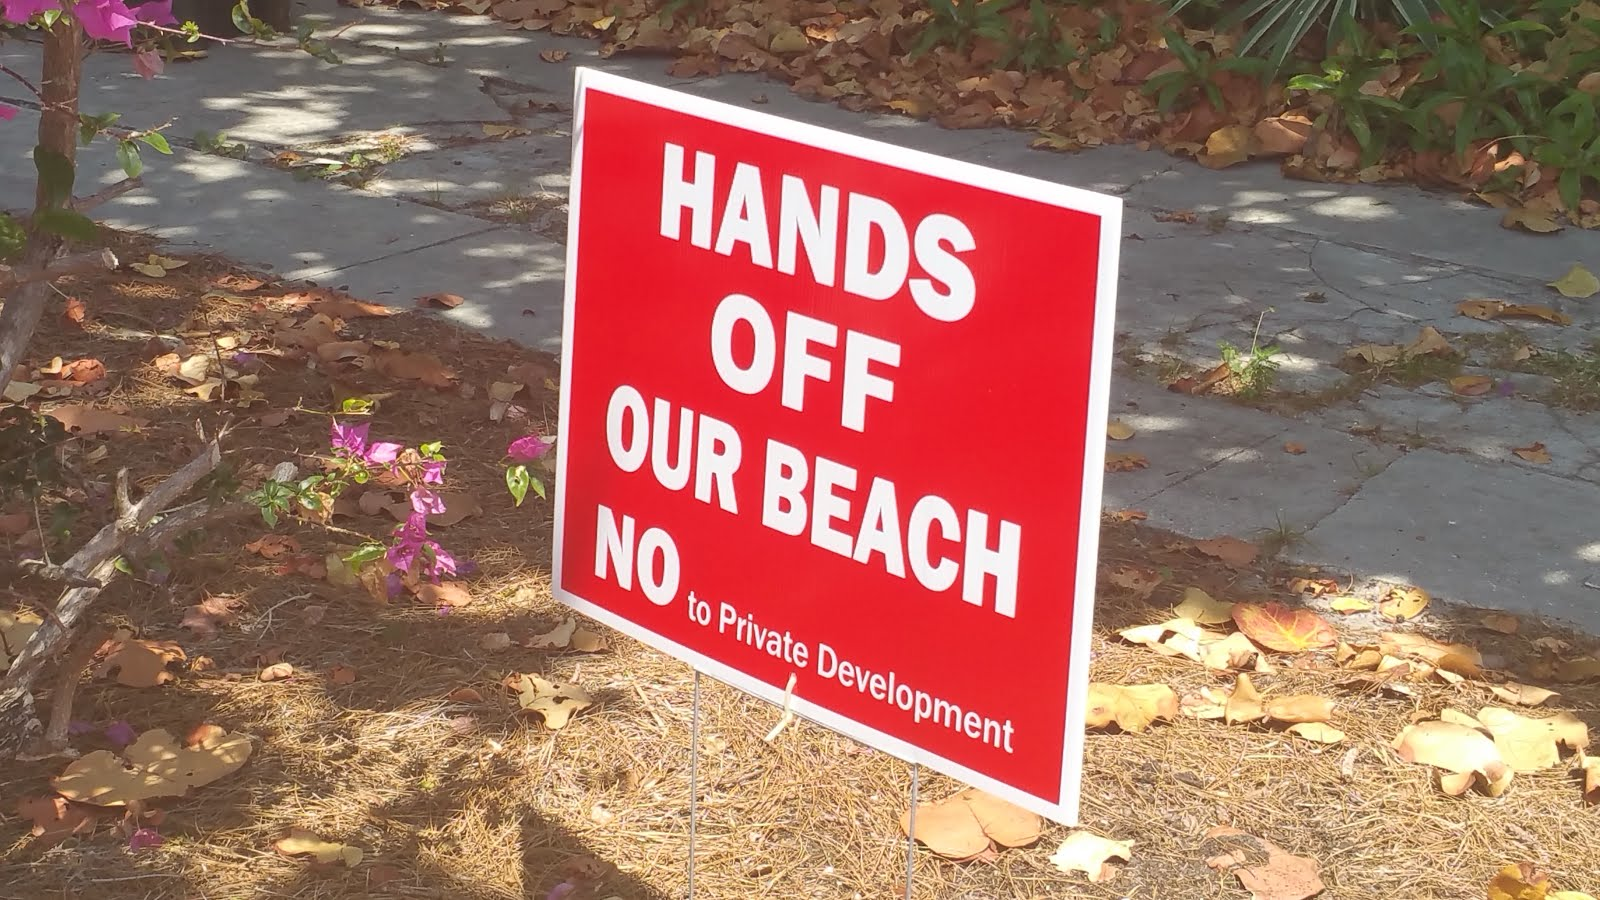 Is Lake Worth selling its BEACH! Of course not. That's just silly.